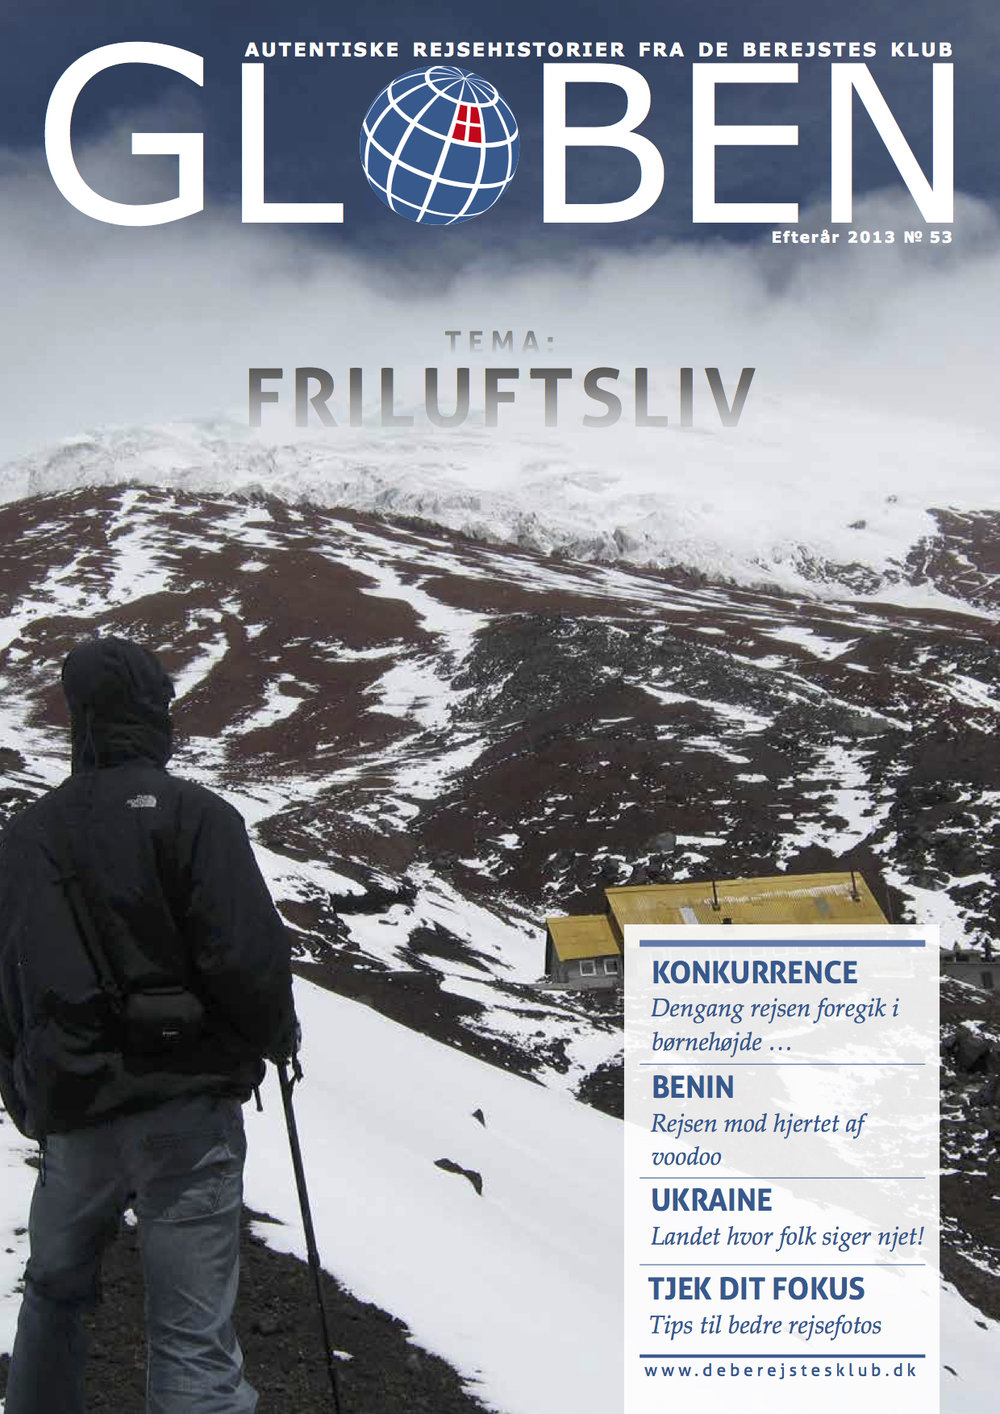 Issue 53: Friluftsliv   This Outdoors issue takes us to witness whale sighting in Qatar, hunting in the Amazon, cycling in Paraguay, climbing in Norway, Argentina, Chile, voodoos in Benin, and much more. Read them  here .